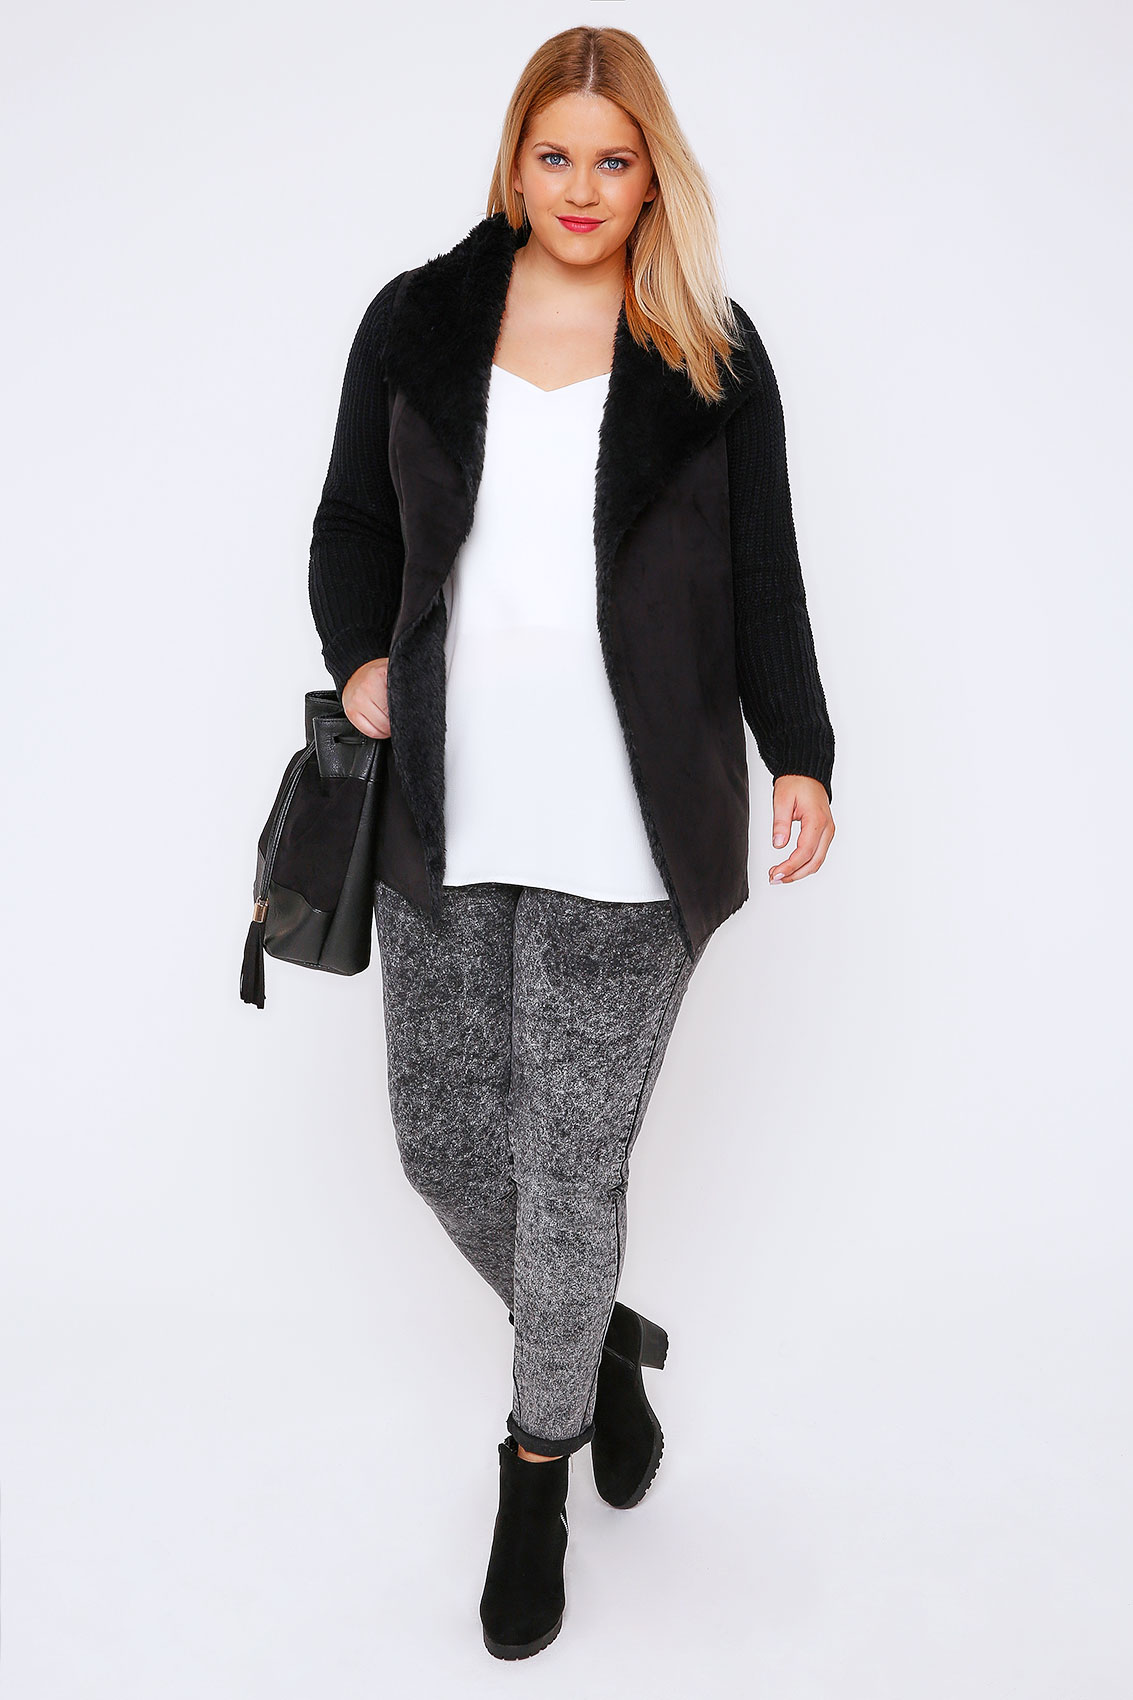 Black Chunky Knit Cardigan With Shearling Collar Plus Size 16 to 32